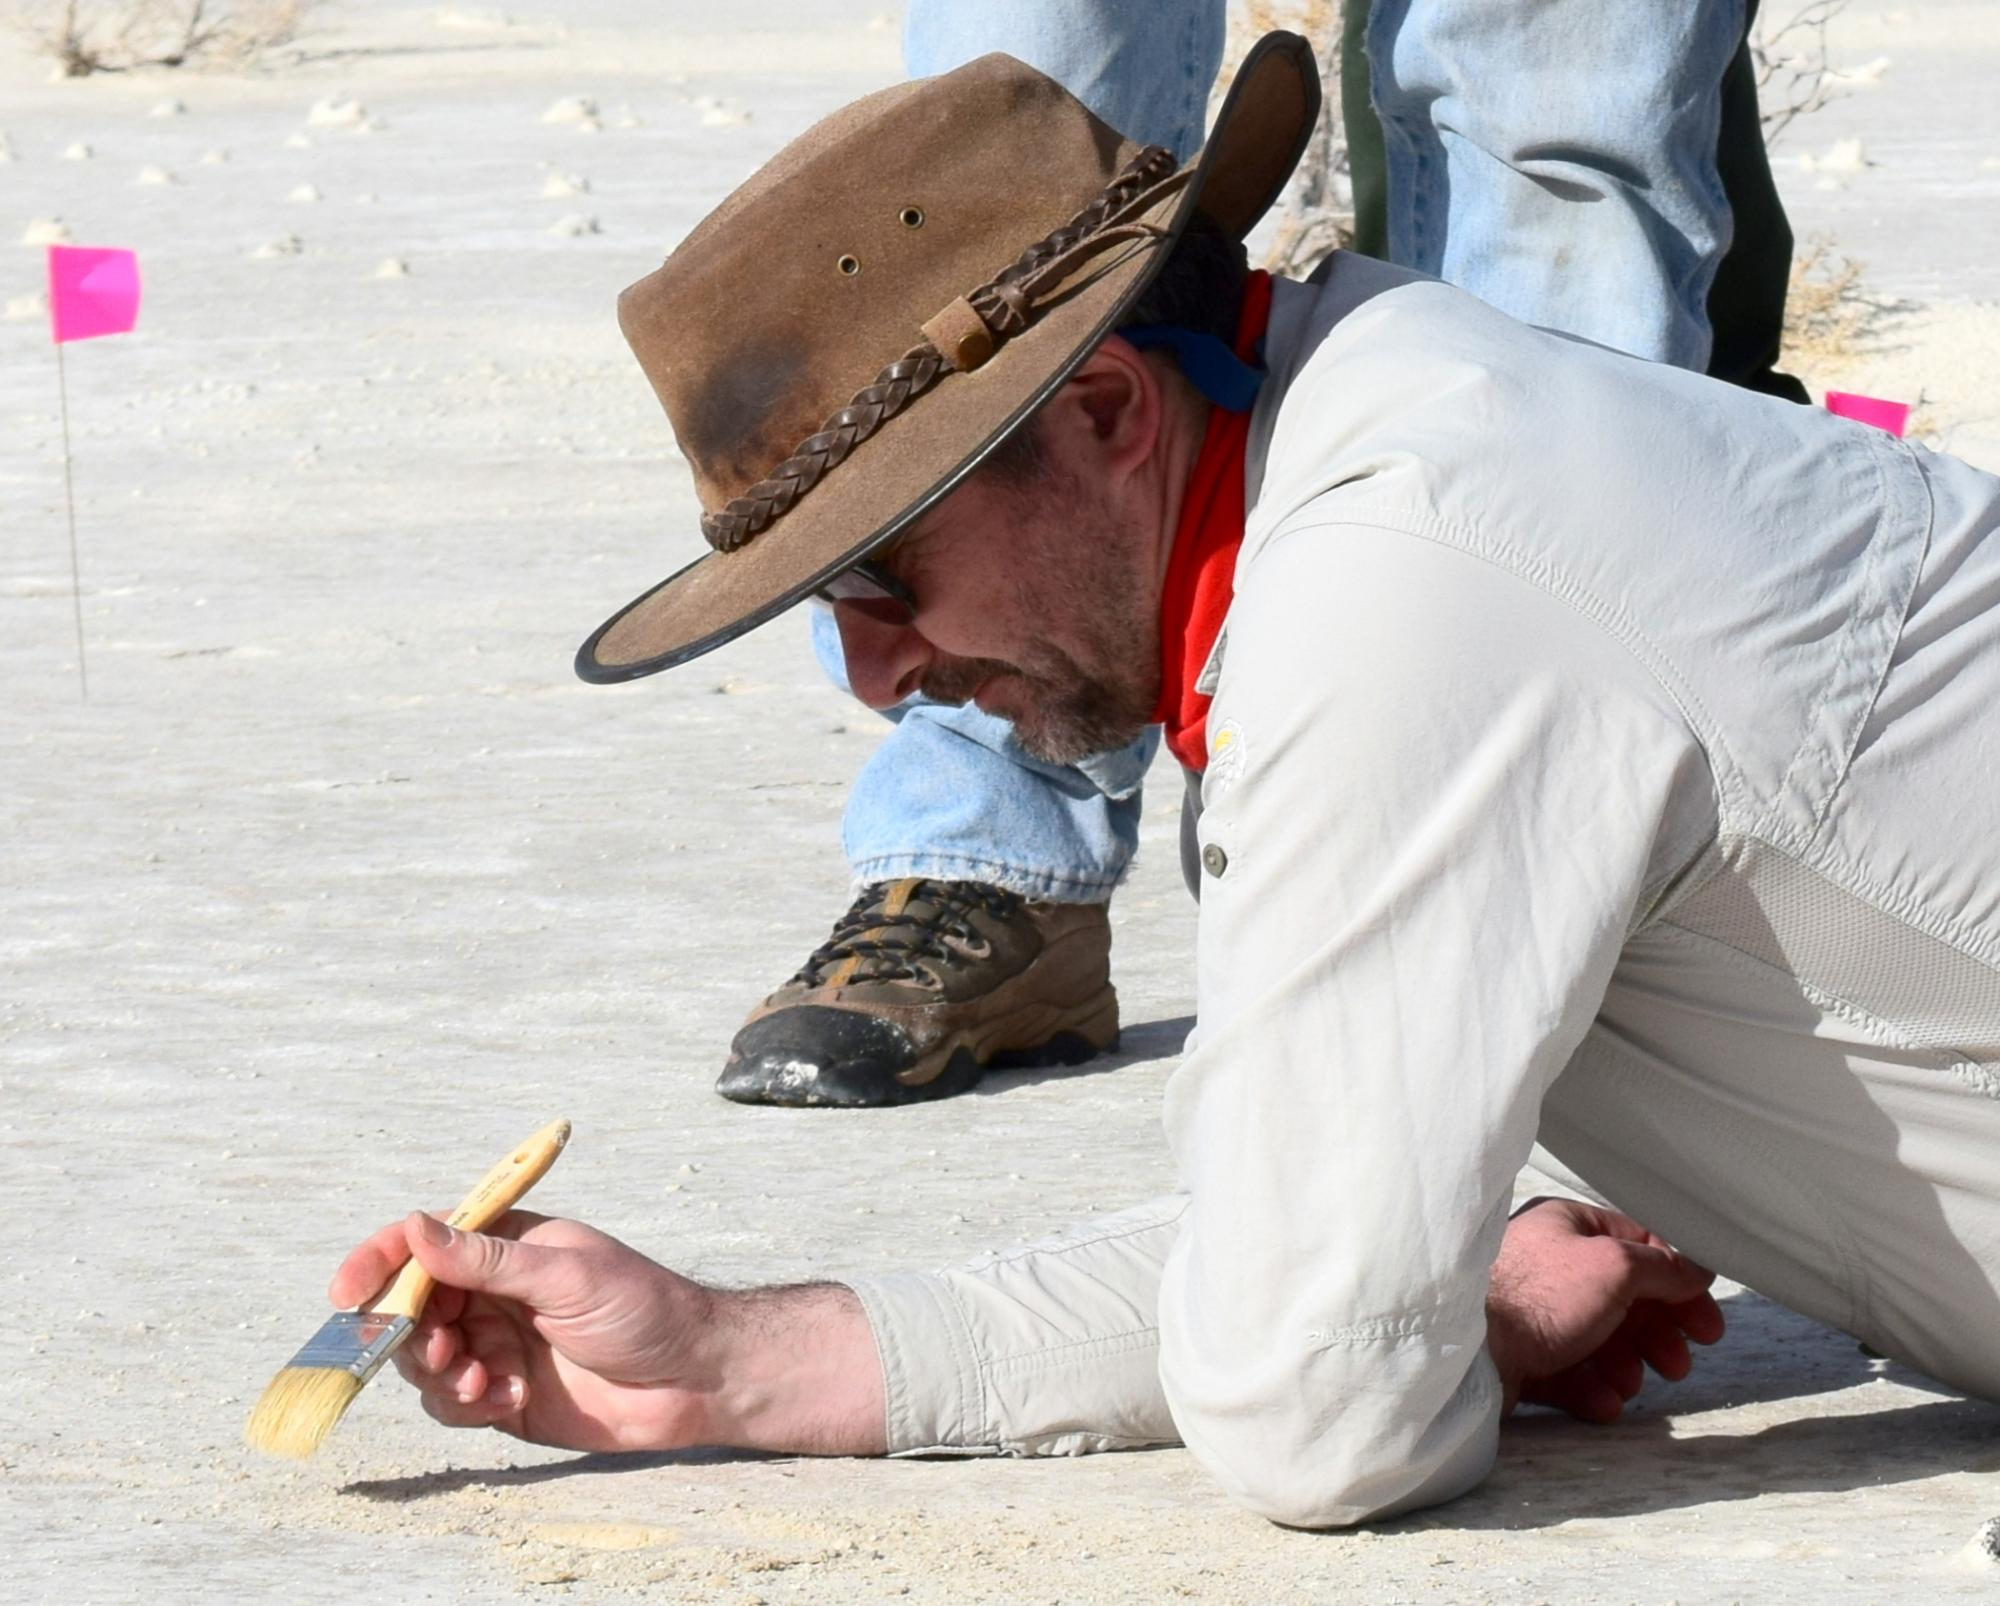 Professor Matthew Bennett, the research team leader, excavating a footprint at the White Sands National Monument field site.